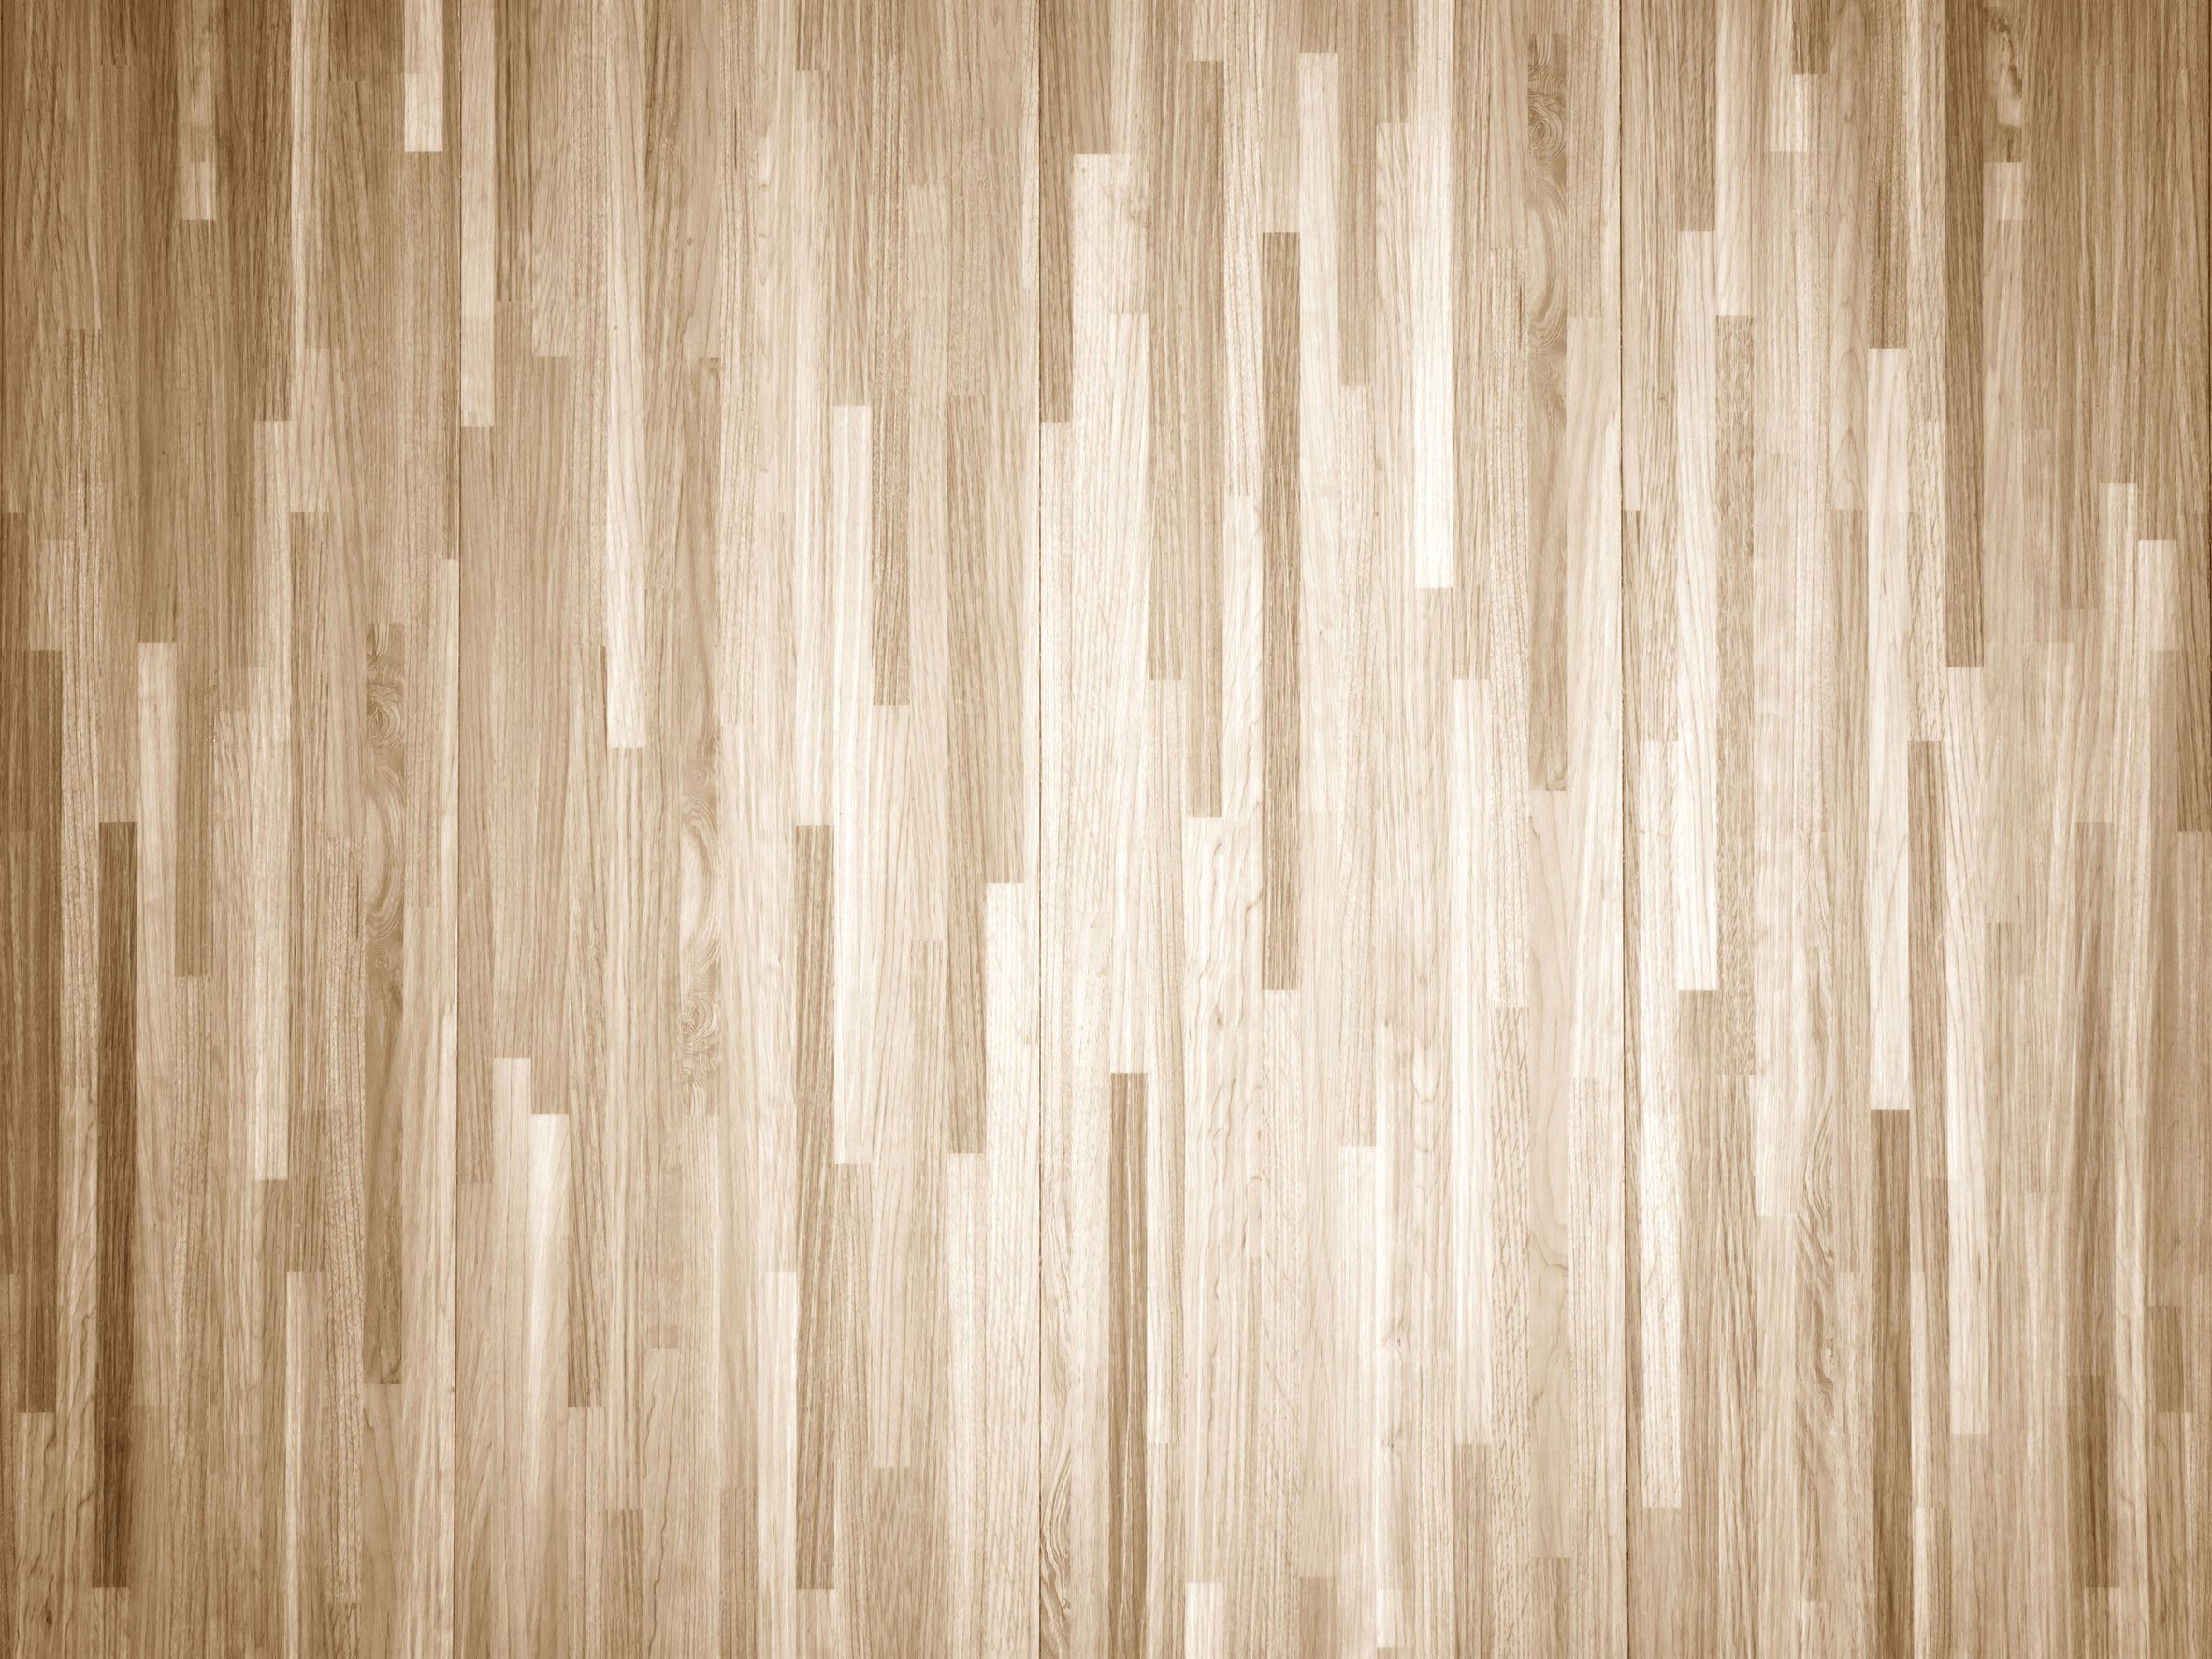 professional hardwood floor cleaning of how to chemically strip wood floors woodfloordoctor com throughout you